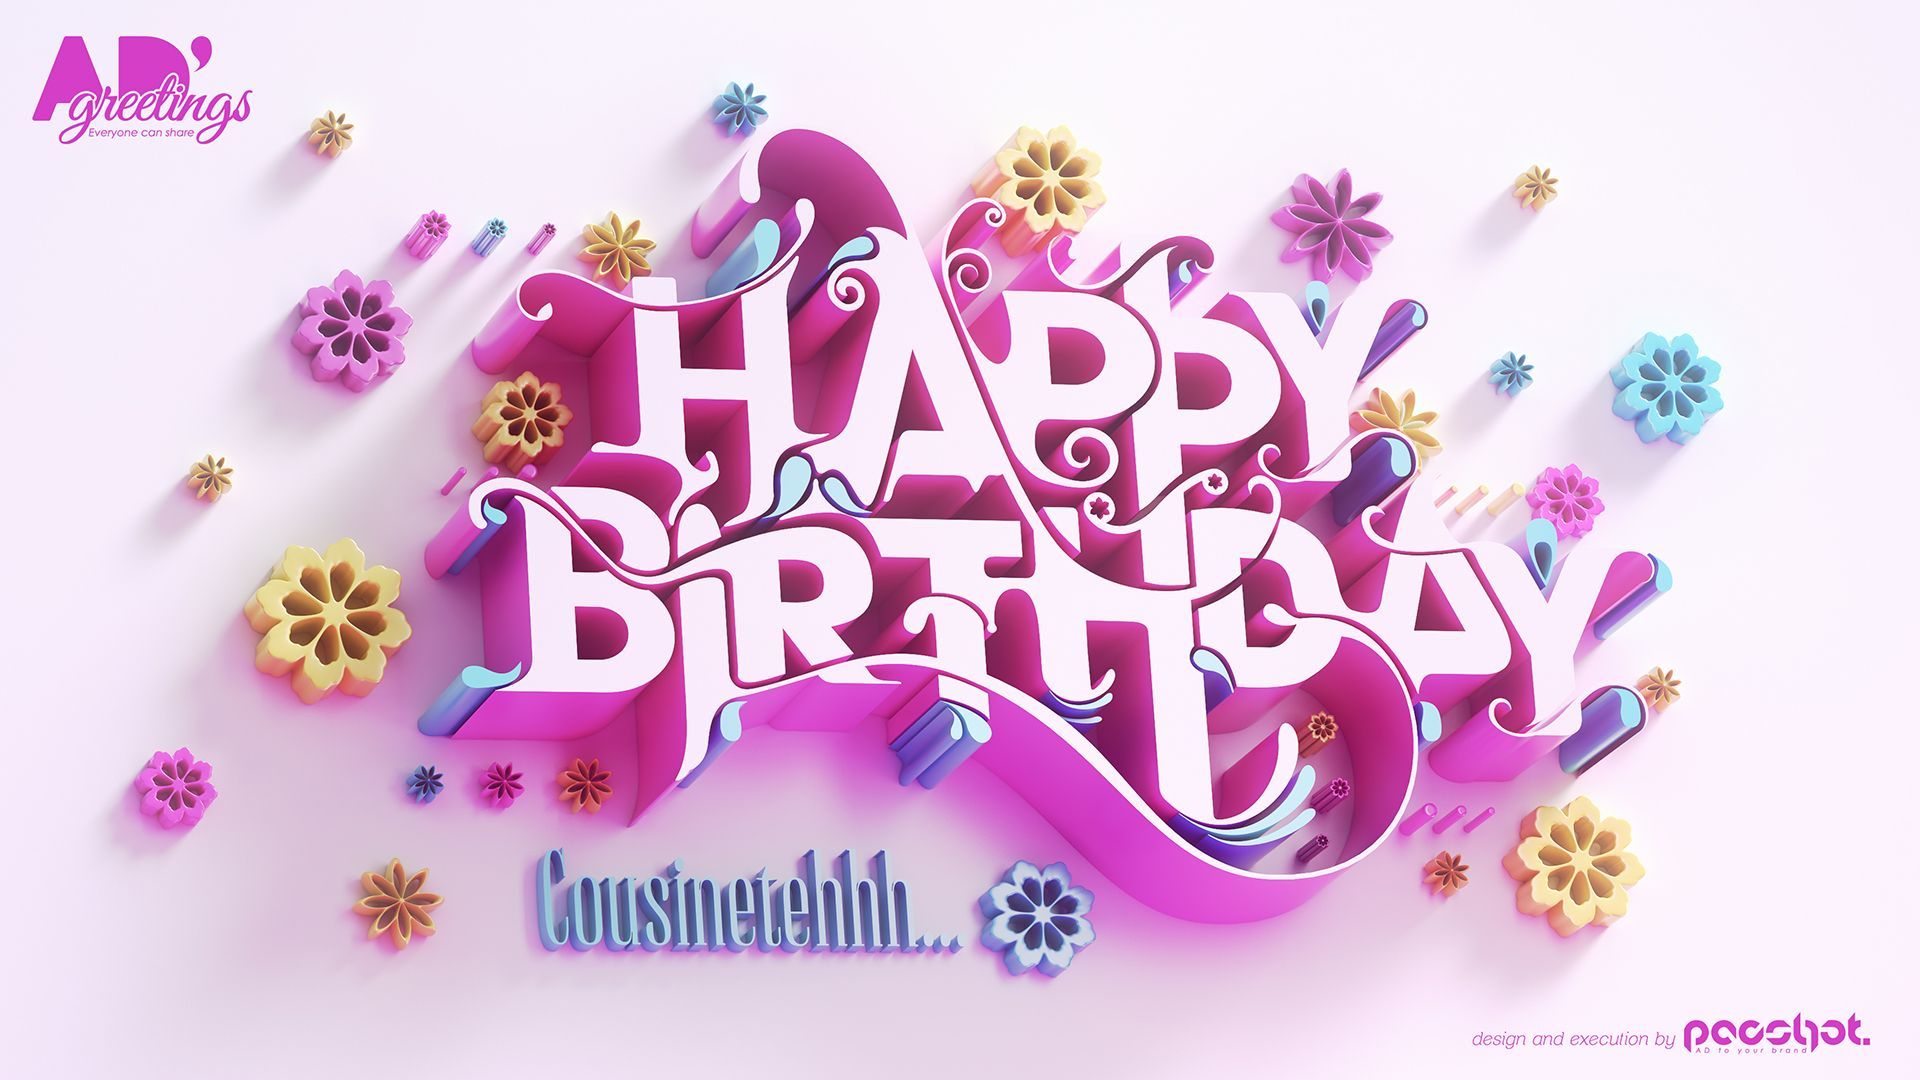 Happy Birthday Greeting Card 2 Is A Digital Greeting Card Designed And Executed By Pacshot A Birthday Card Design Birthday Greetings Happy Birthday Typography